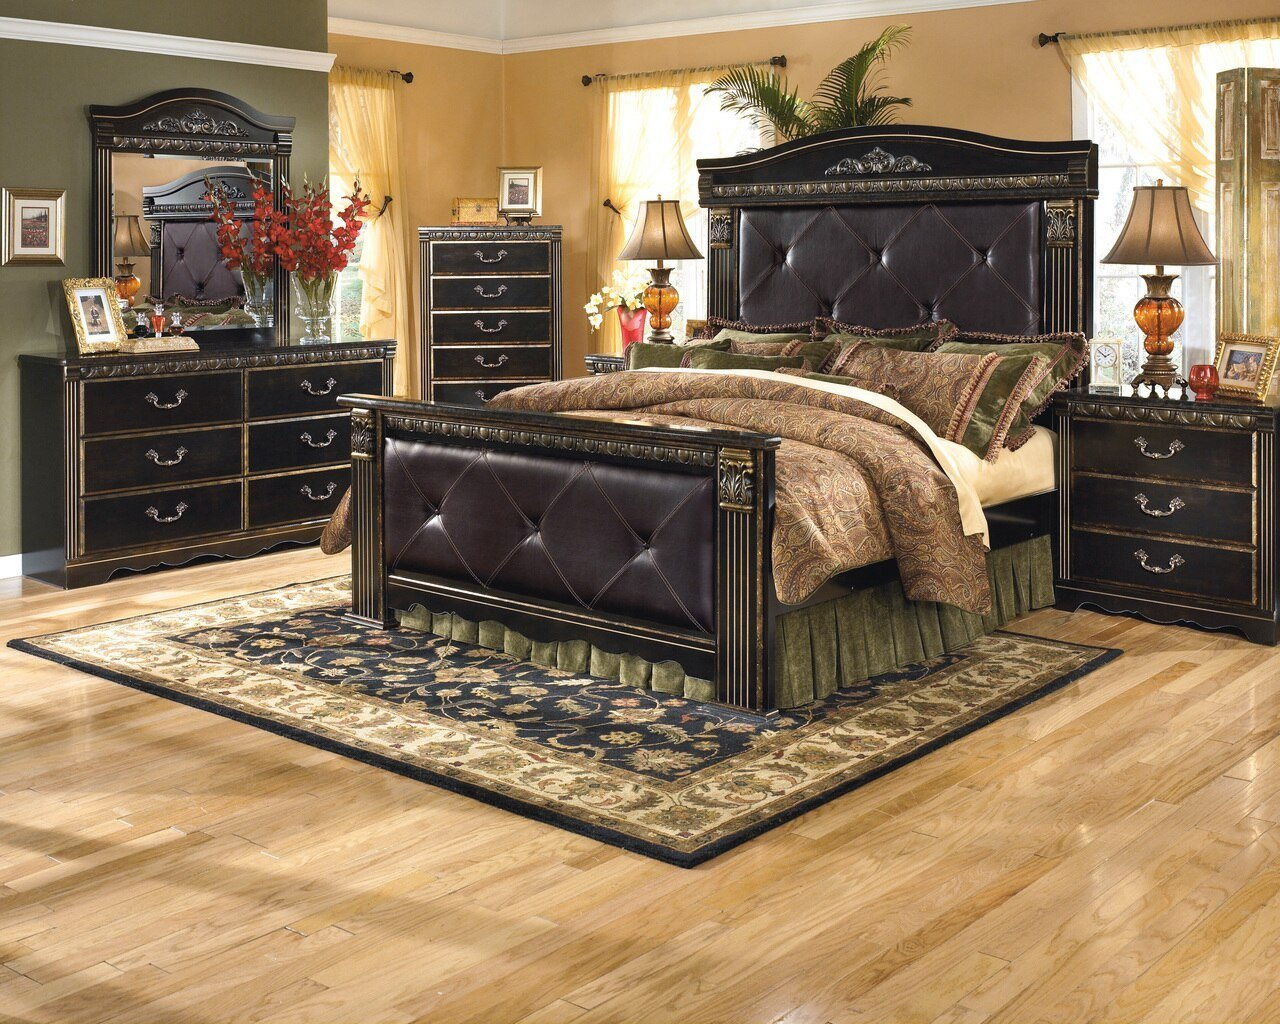 Best Briarwood Oversized Bedroom Set Cb Furniture With Pictures